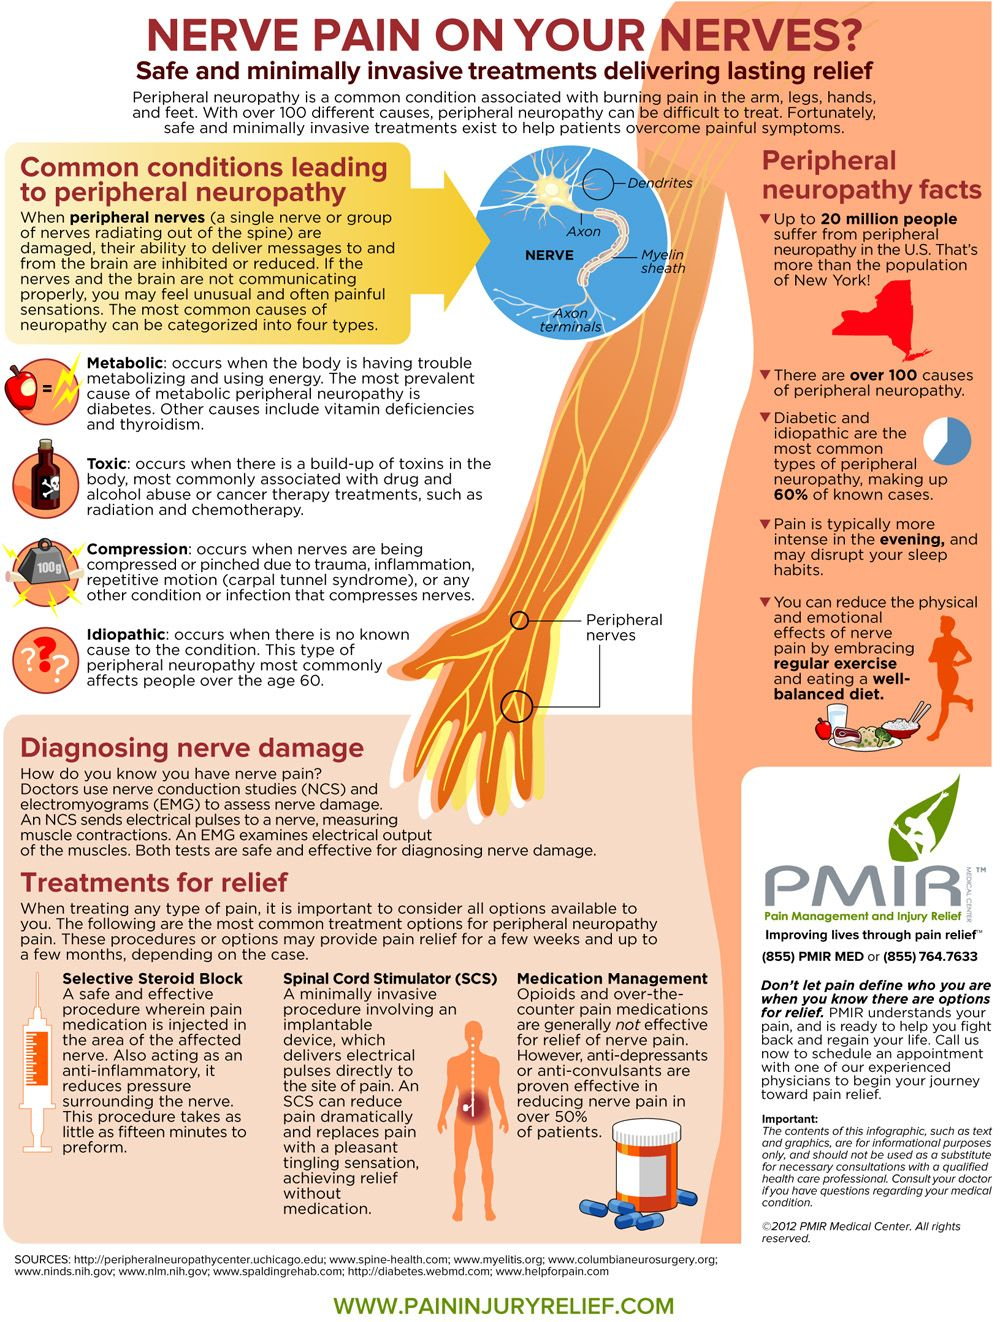 Know Your Pain Treatment Options advise